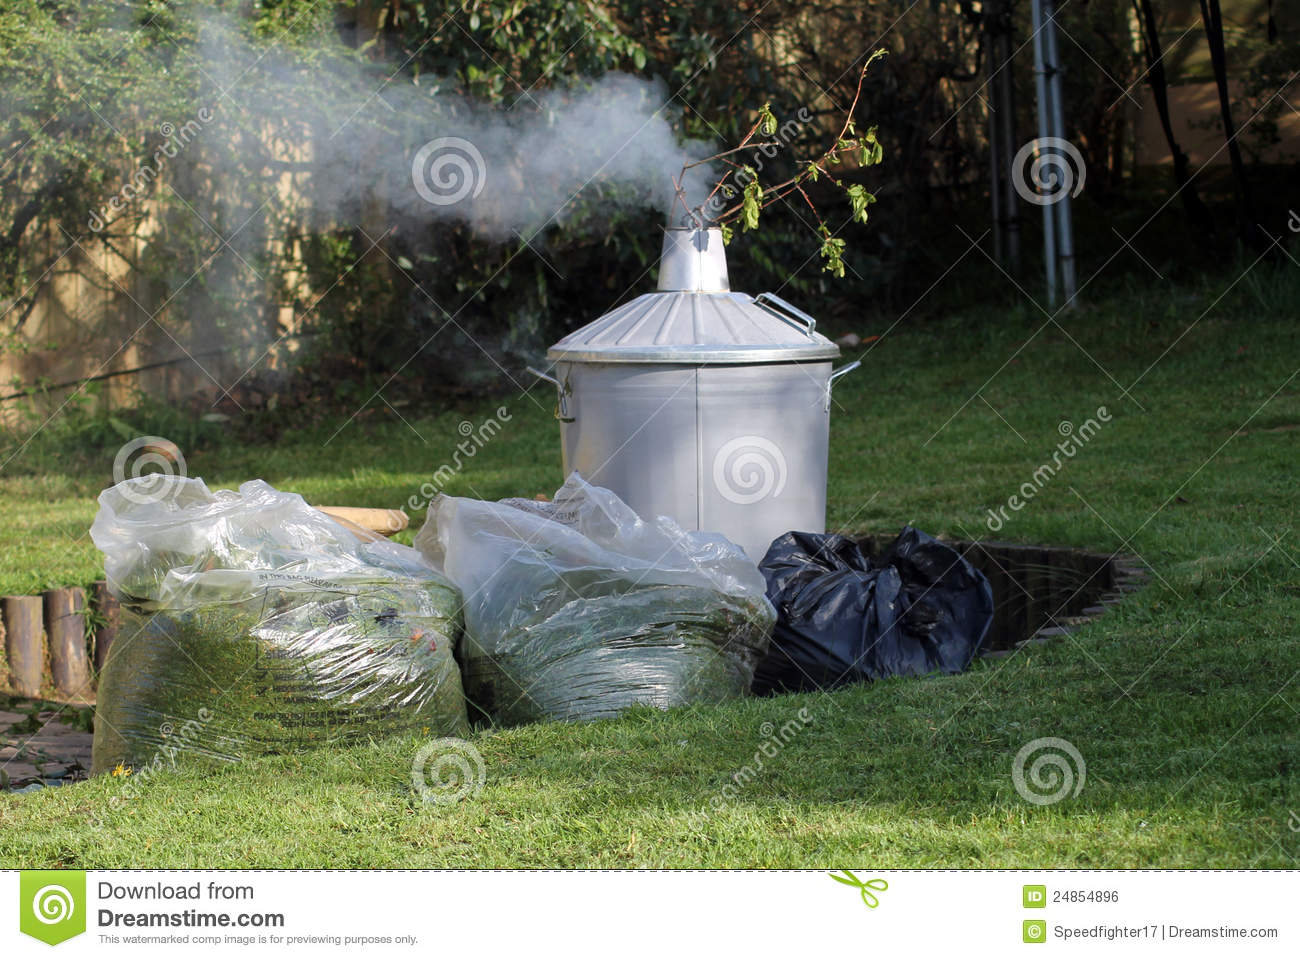 garden incinerator royalty free stock image image 24854896